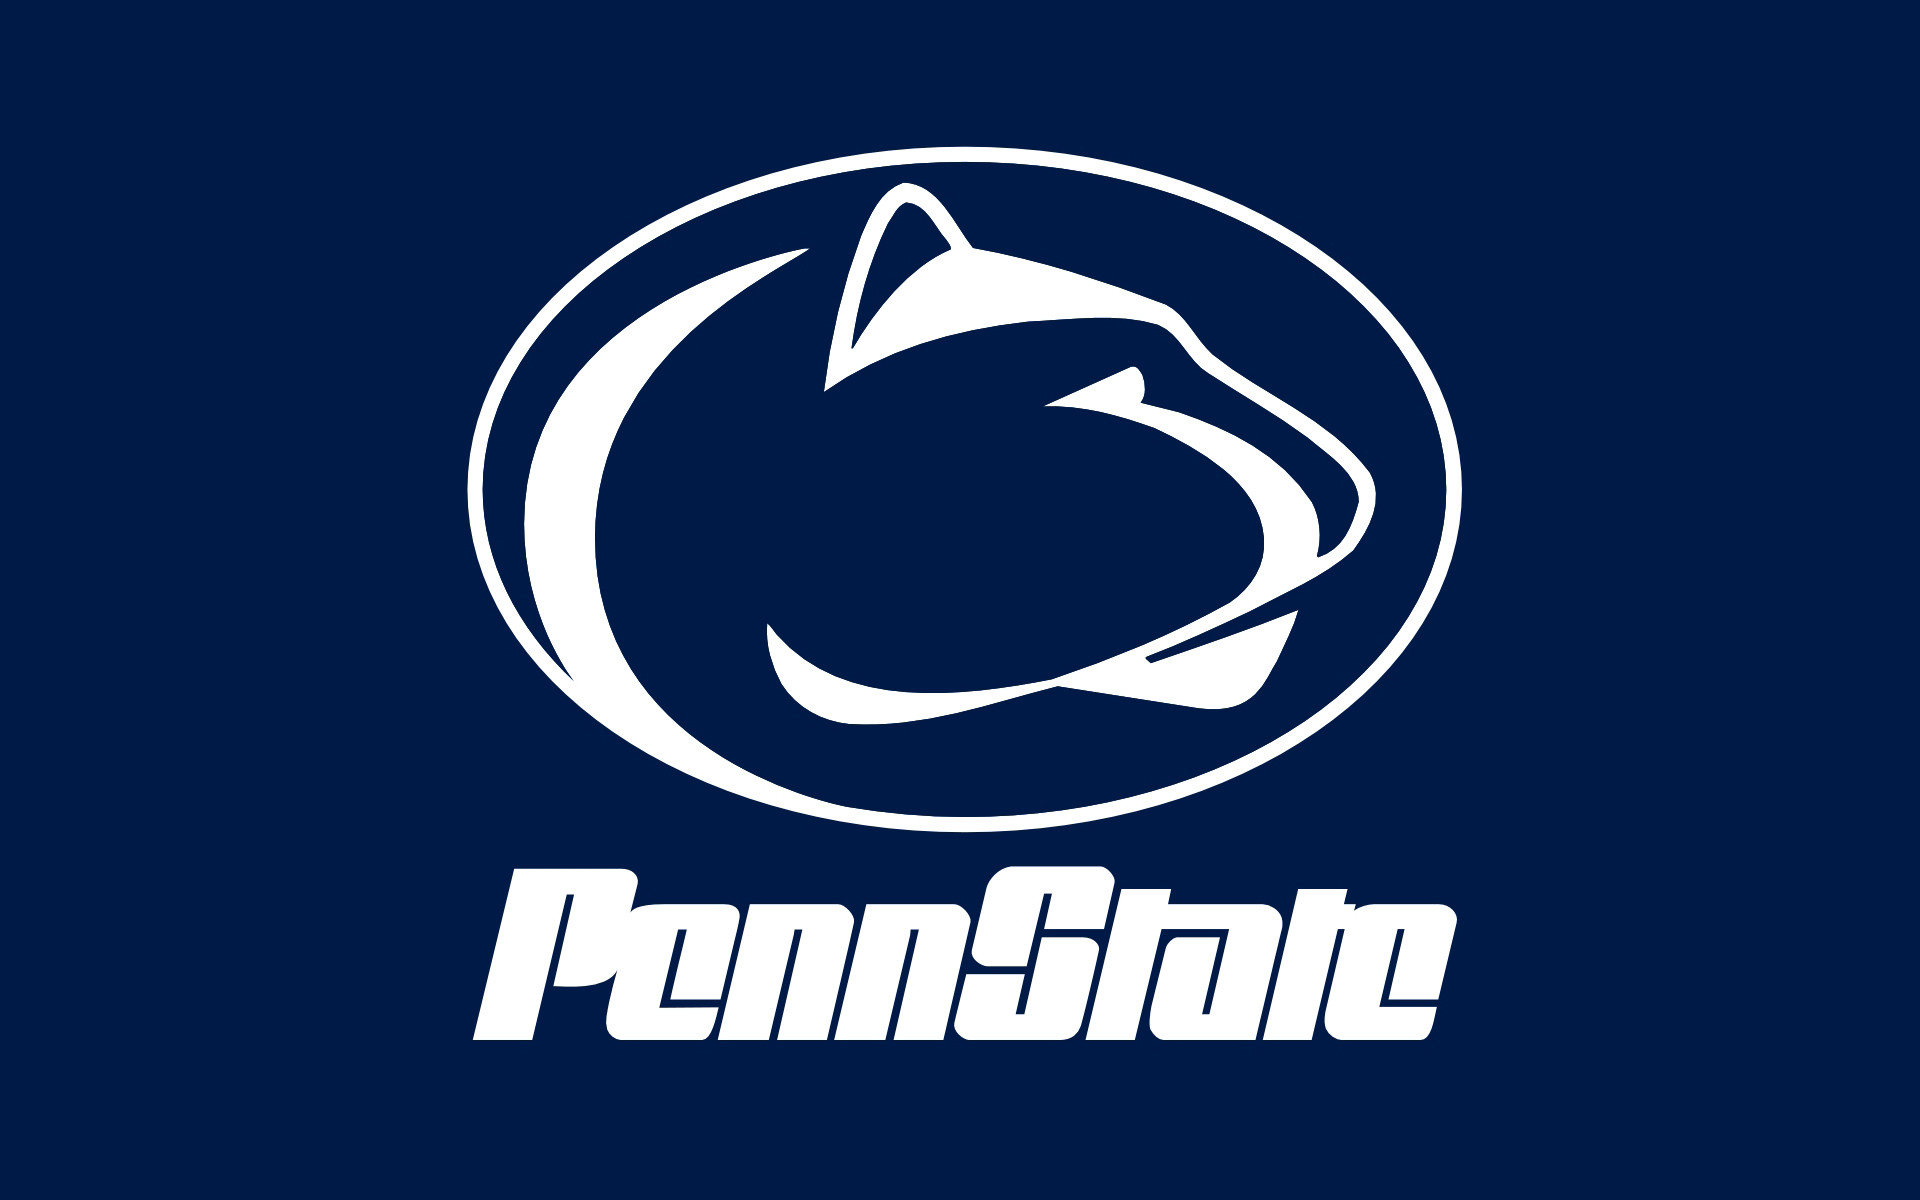 1920x1200 Penn State Football Logo Wallpaper 44453